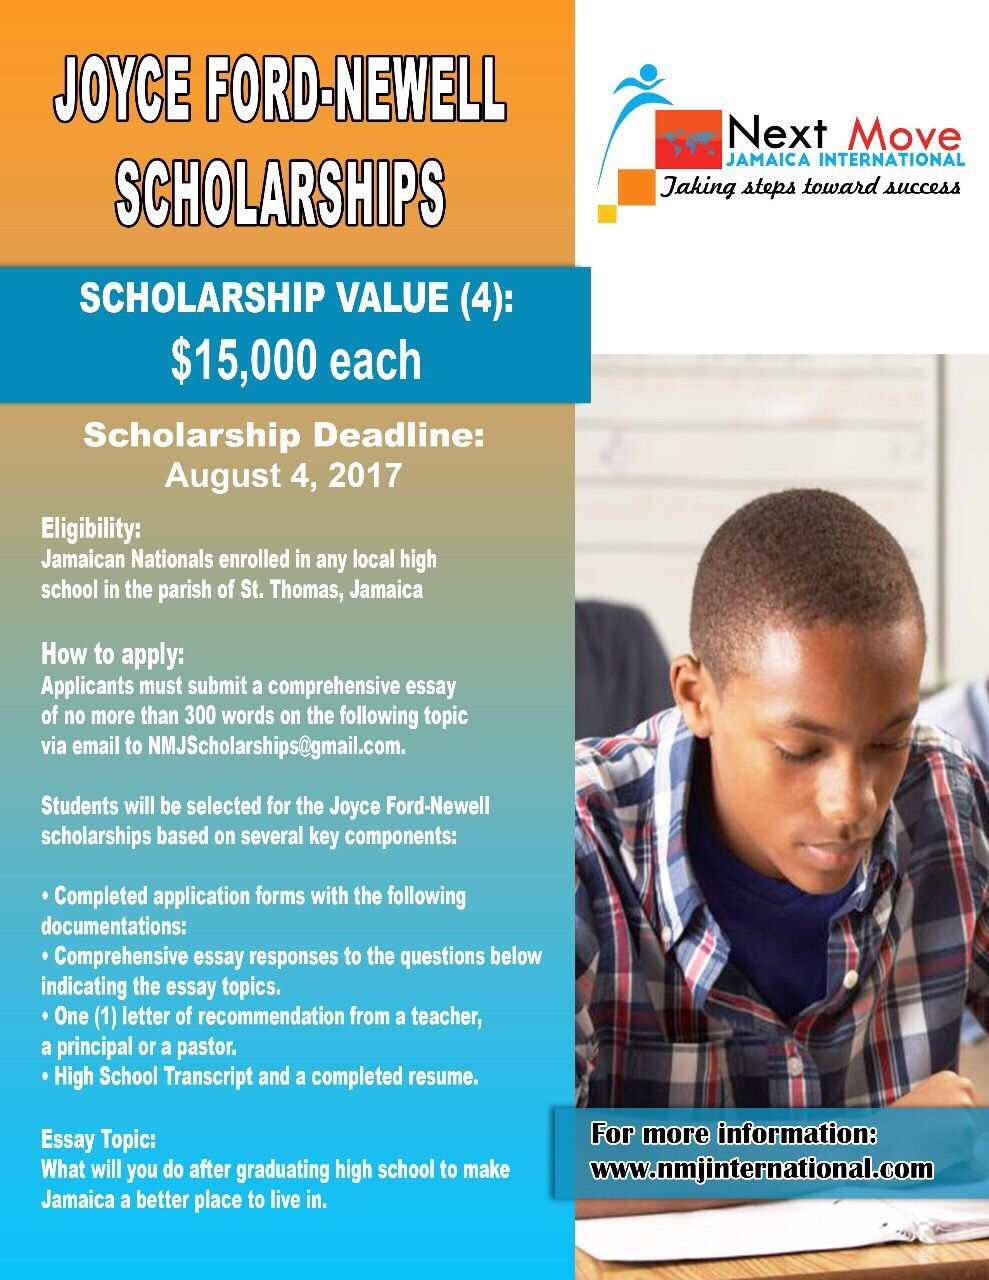 Joyce Ford Newell Scholarships The scholarships are